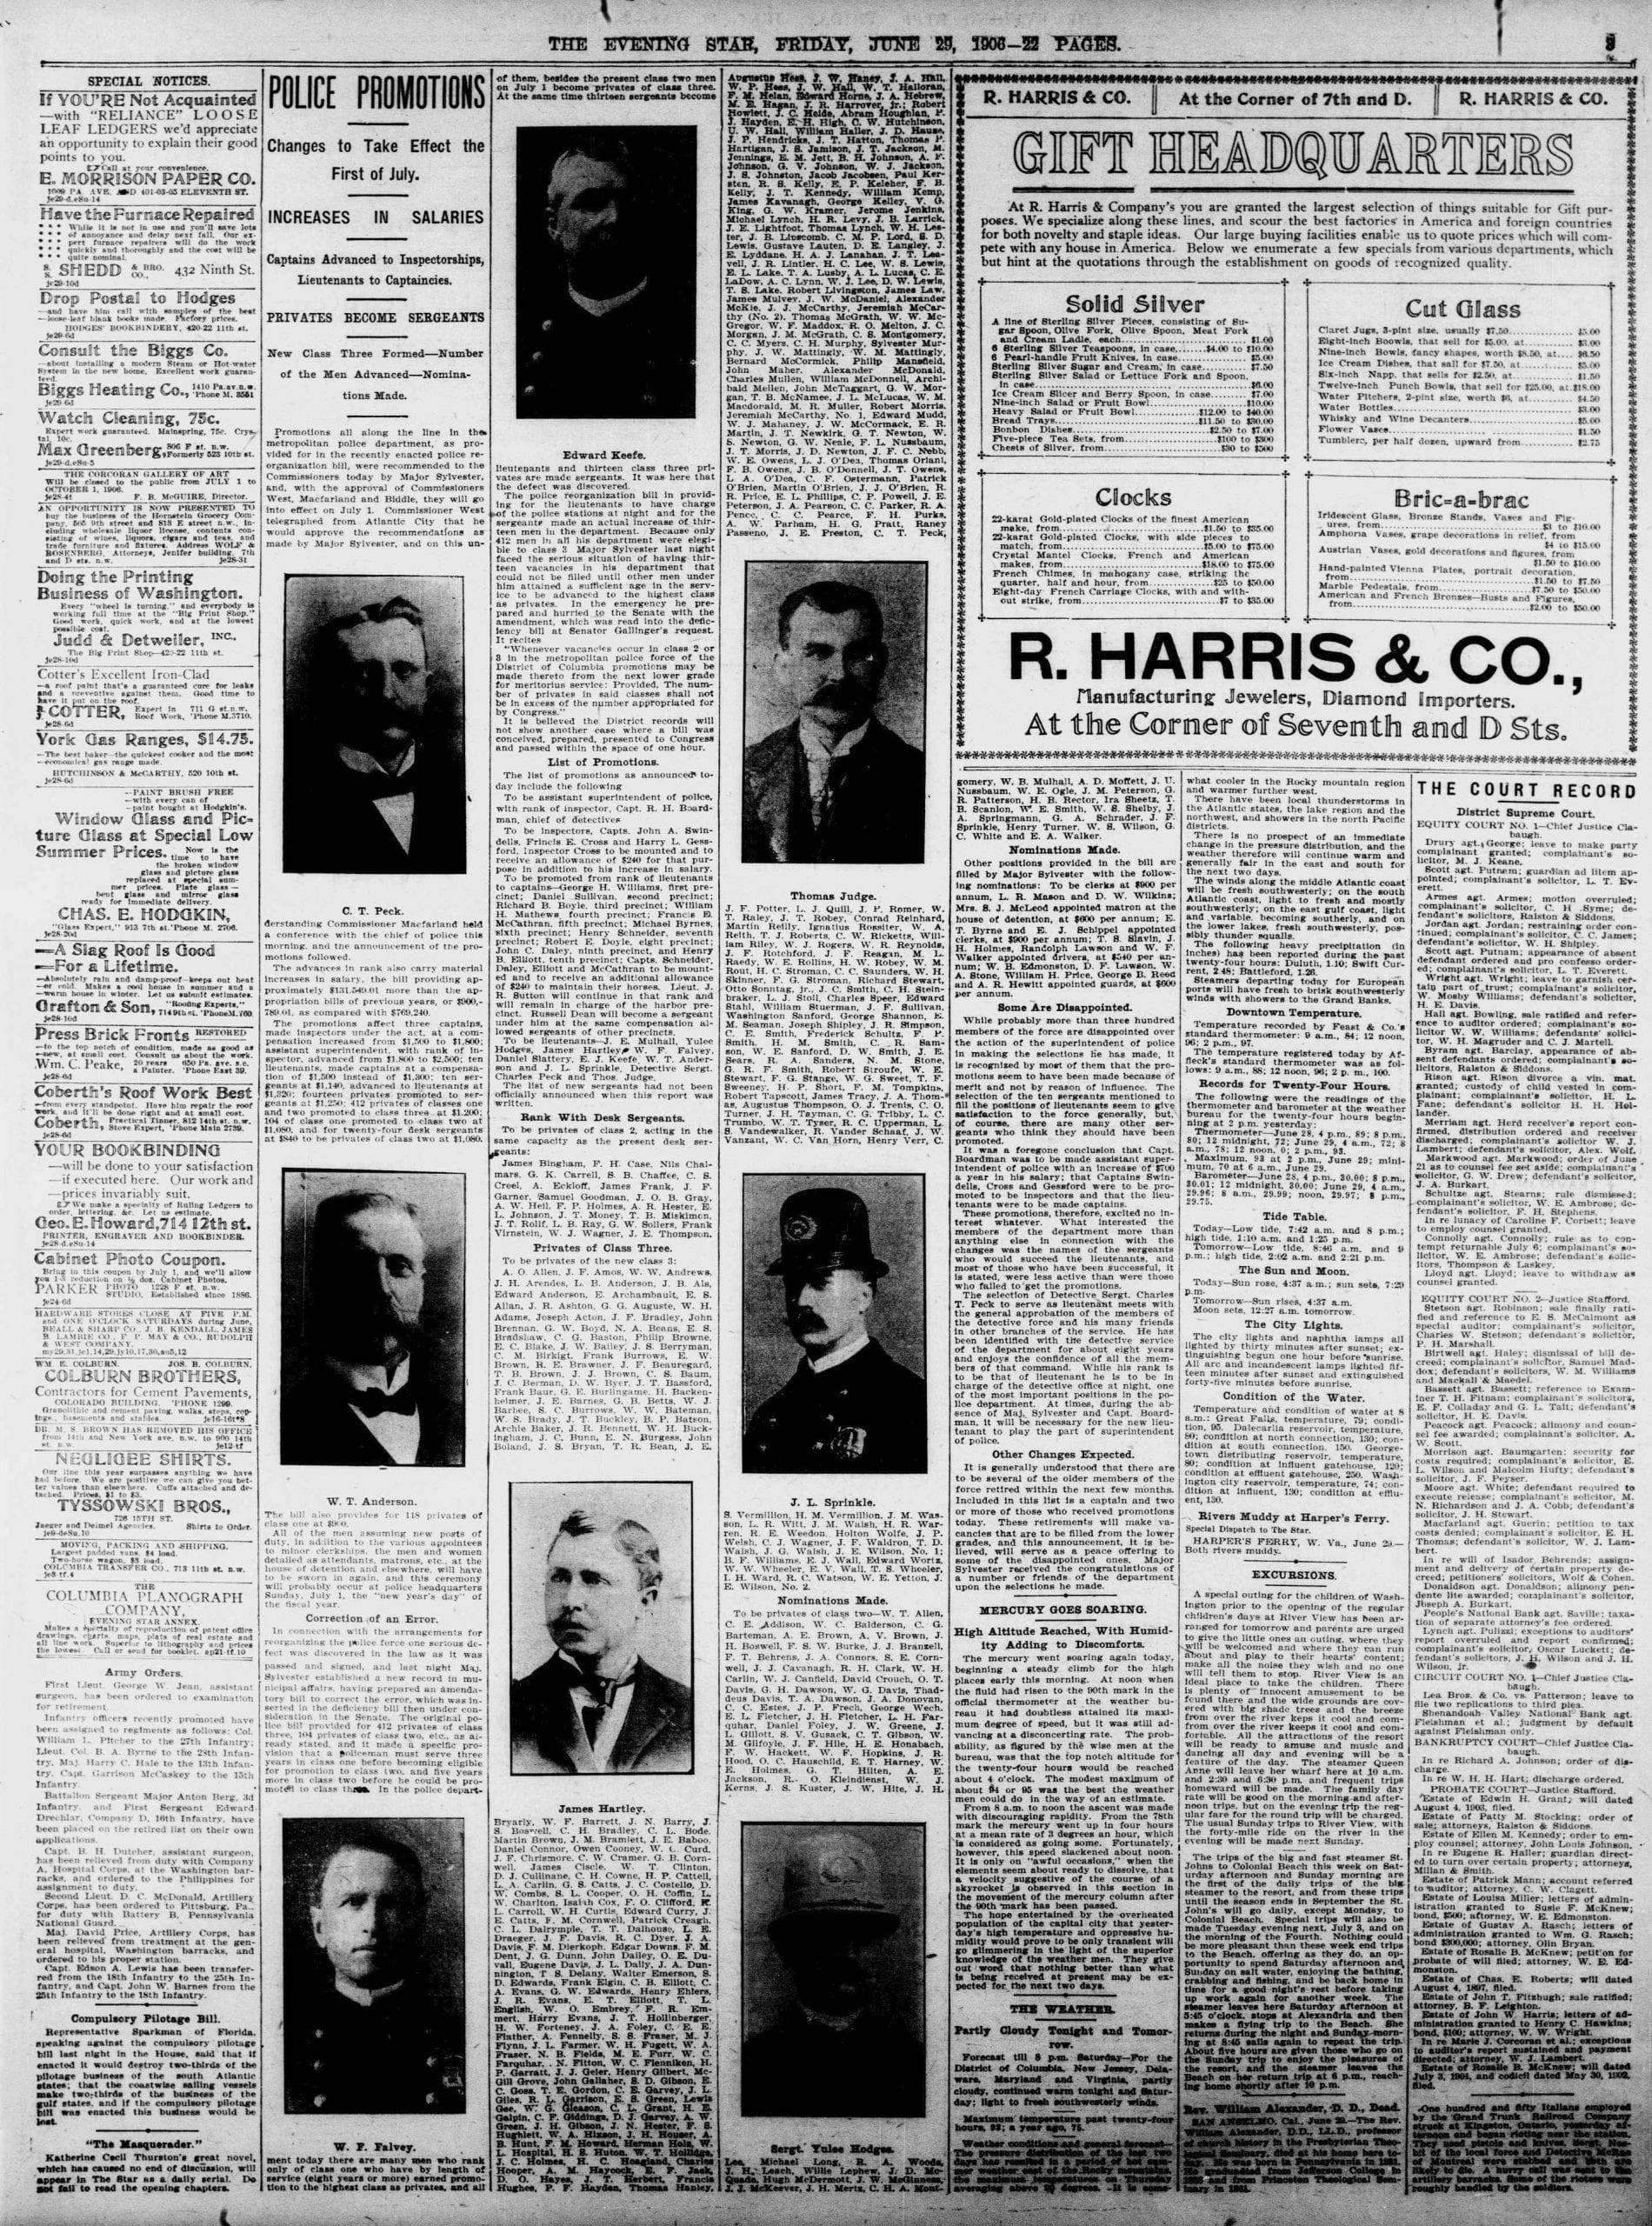 The Evening Star - June 29th, 1906